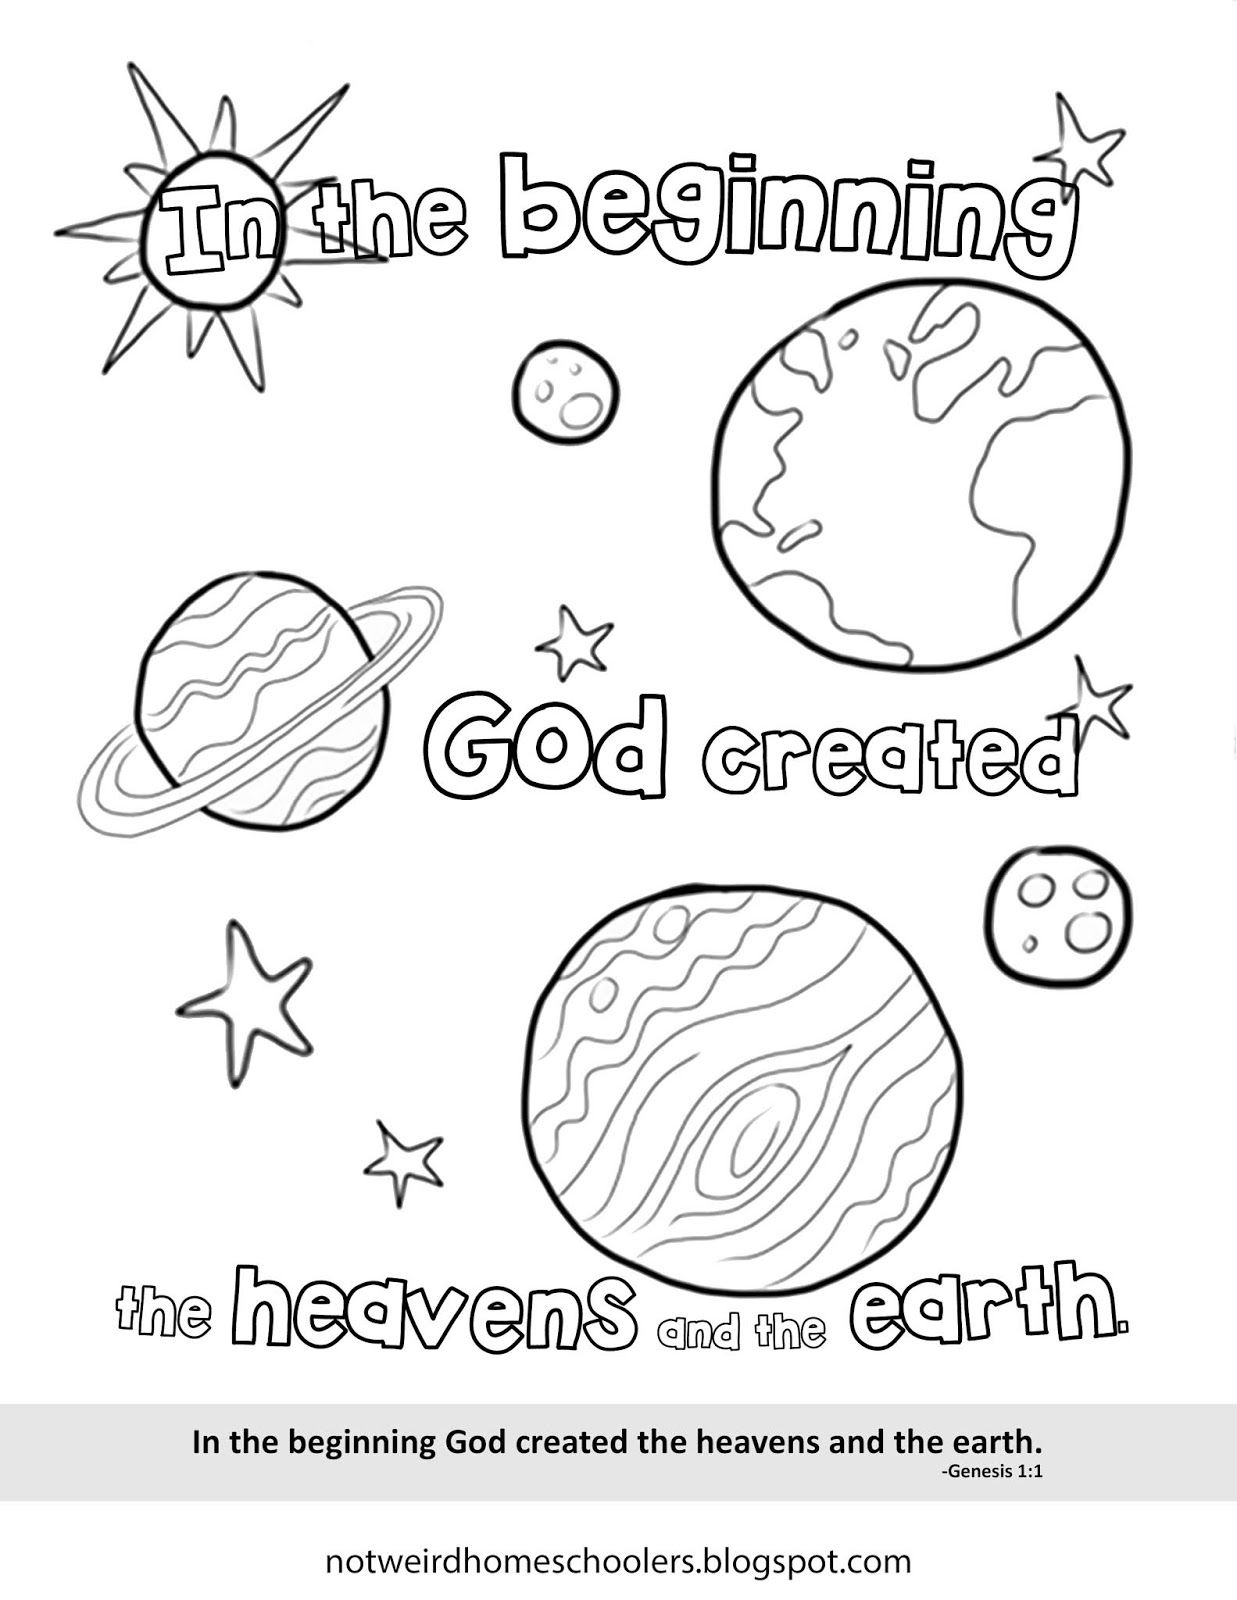 Free Homeschooling Resource Genesis 1 1 Coloring Page In 2020 Bible Worksheets Bible Coloring Pages Sunday School Coloring Pages